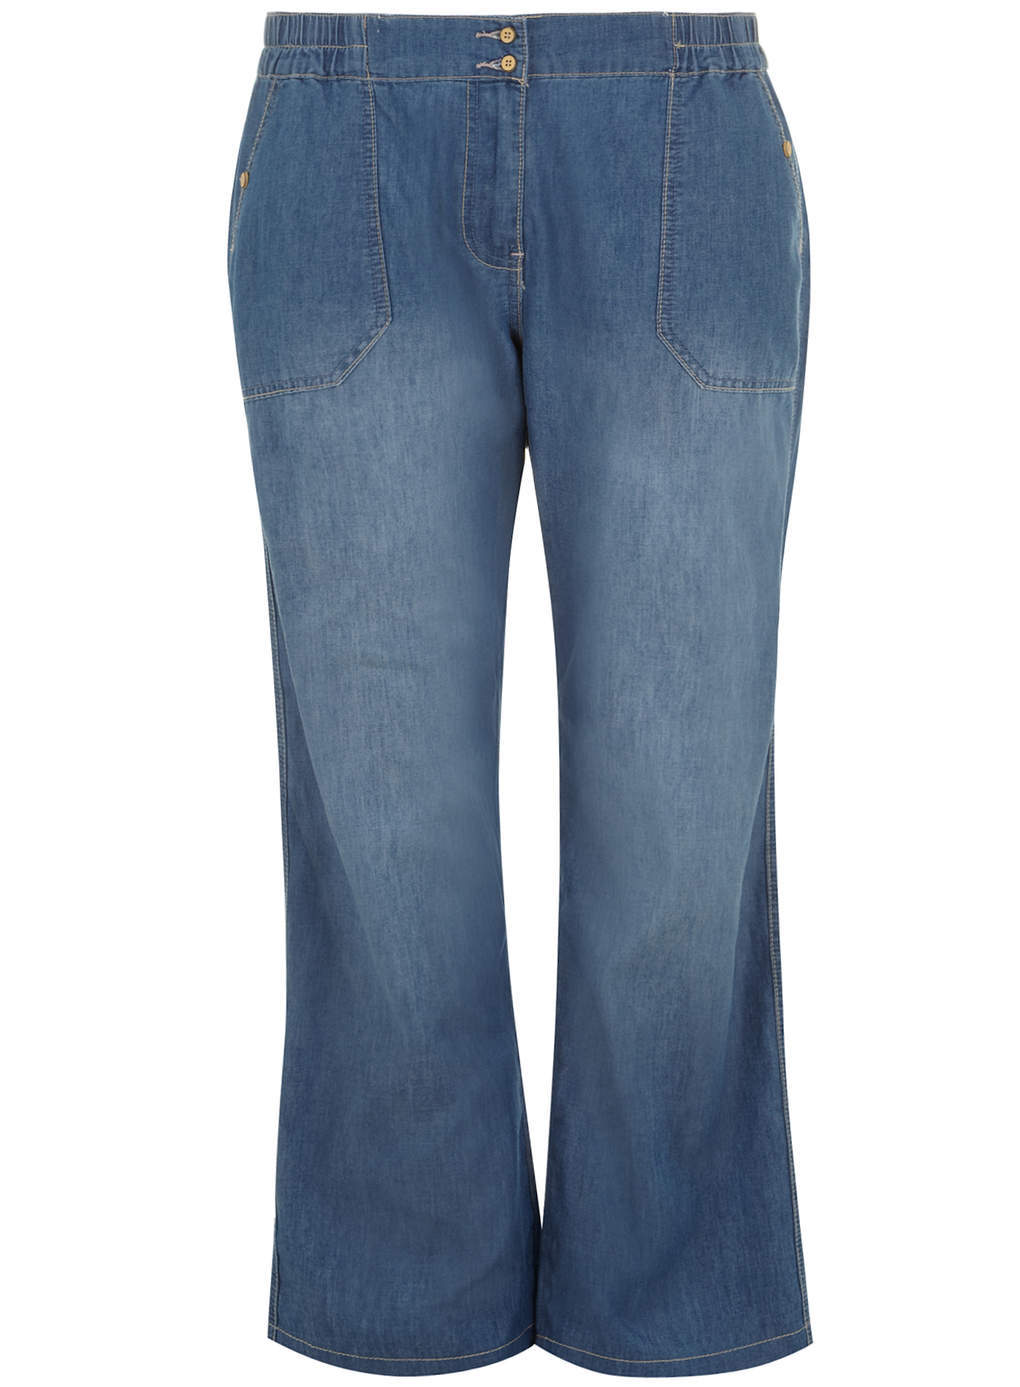 Blue Lightweight Slouch Jeans - style: bootcut; length: standard; pattern: plain; pocket detail: traditional 5 pocket; waist: mid/regular rise; predominant colour: denim; occasions: casual, creative work; fibres: cotton - mix; jeans detail: shading down centre of thigh, washed/faded; texture group: denim; pattern type: fabric; season: s/s 2014